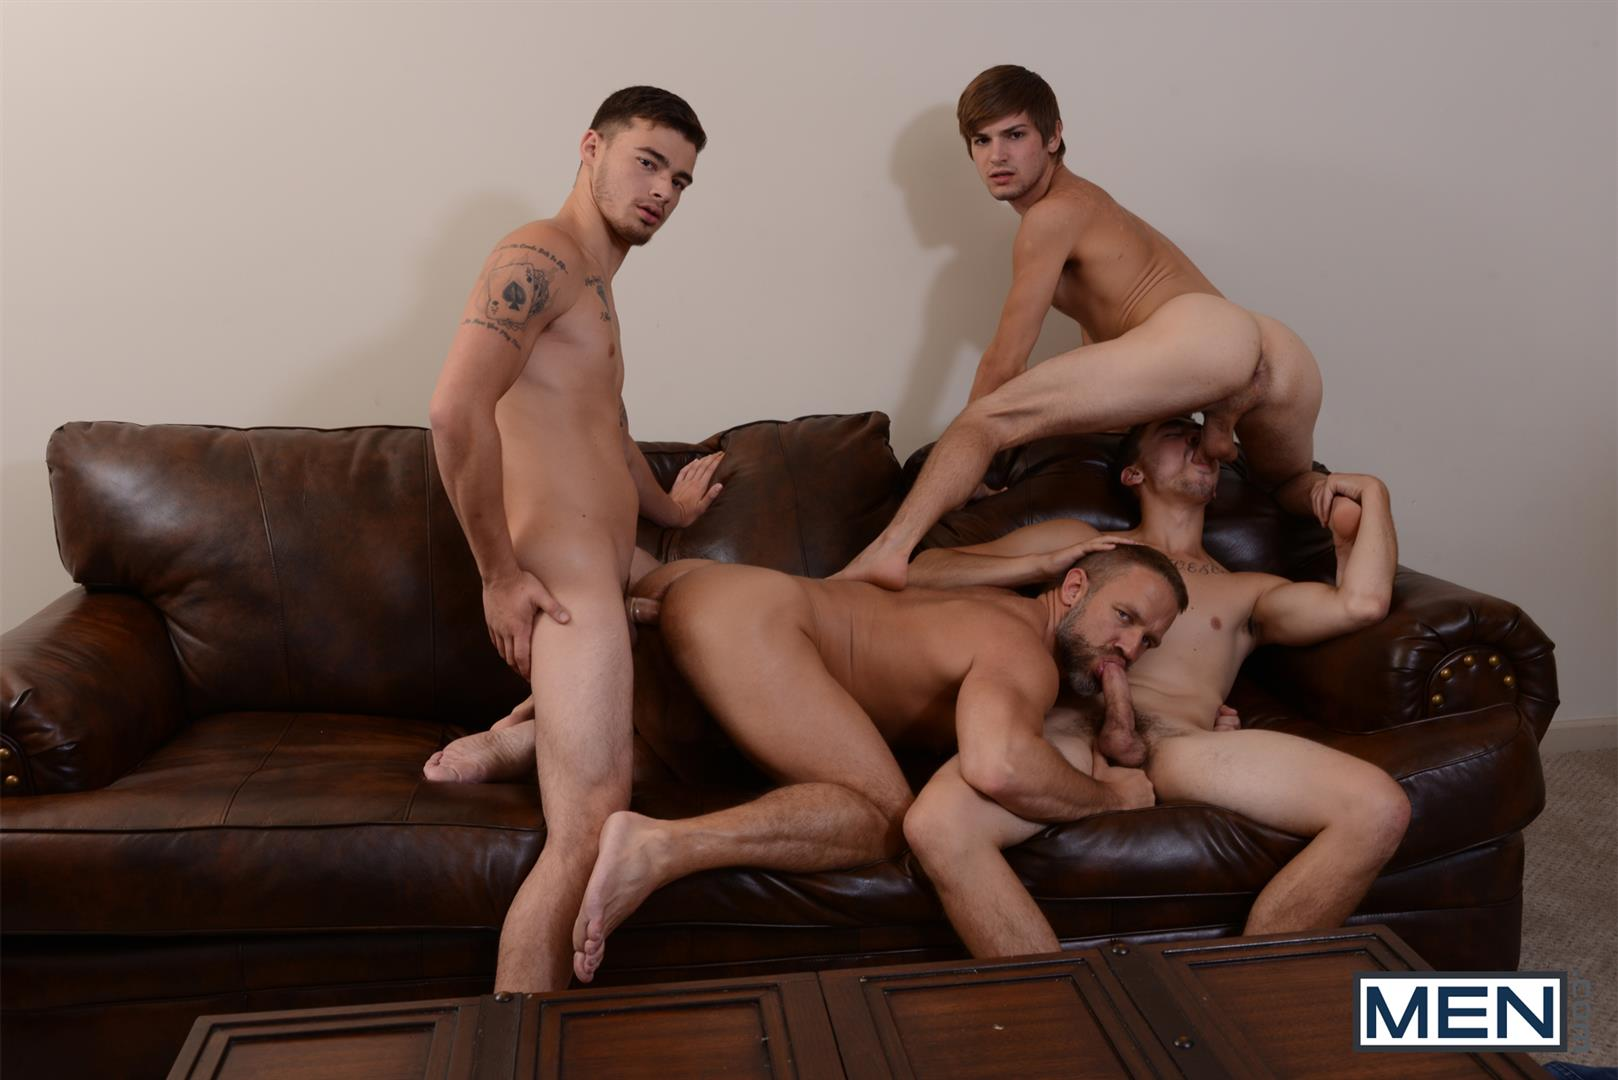 Men Jizz Orgy Asher Hawk and Dirk Caber and Johnny Rapid and Trevor Spade Triple Penetrated In the Ass Amateur Gay Porn 17